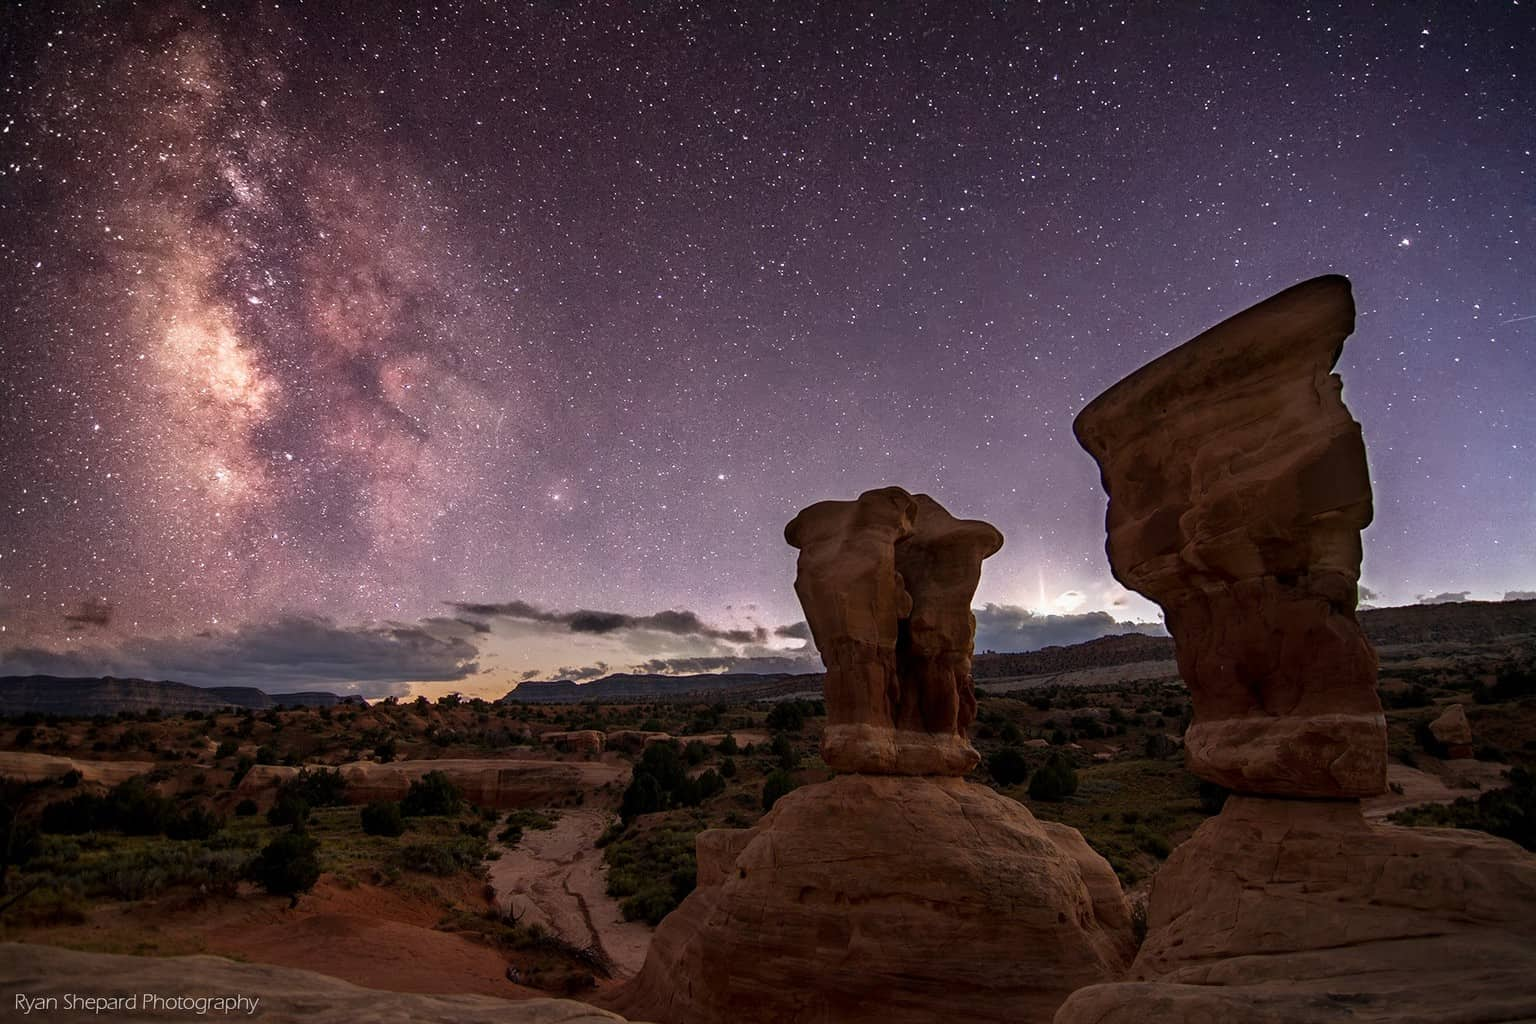 A very peaceful place in a very unpopulated area. No light pollution. No sounds. Just stars bright and far as the eye can see. Arches National Park, UT Sept 2015